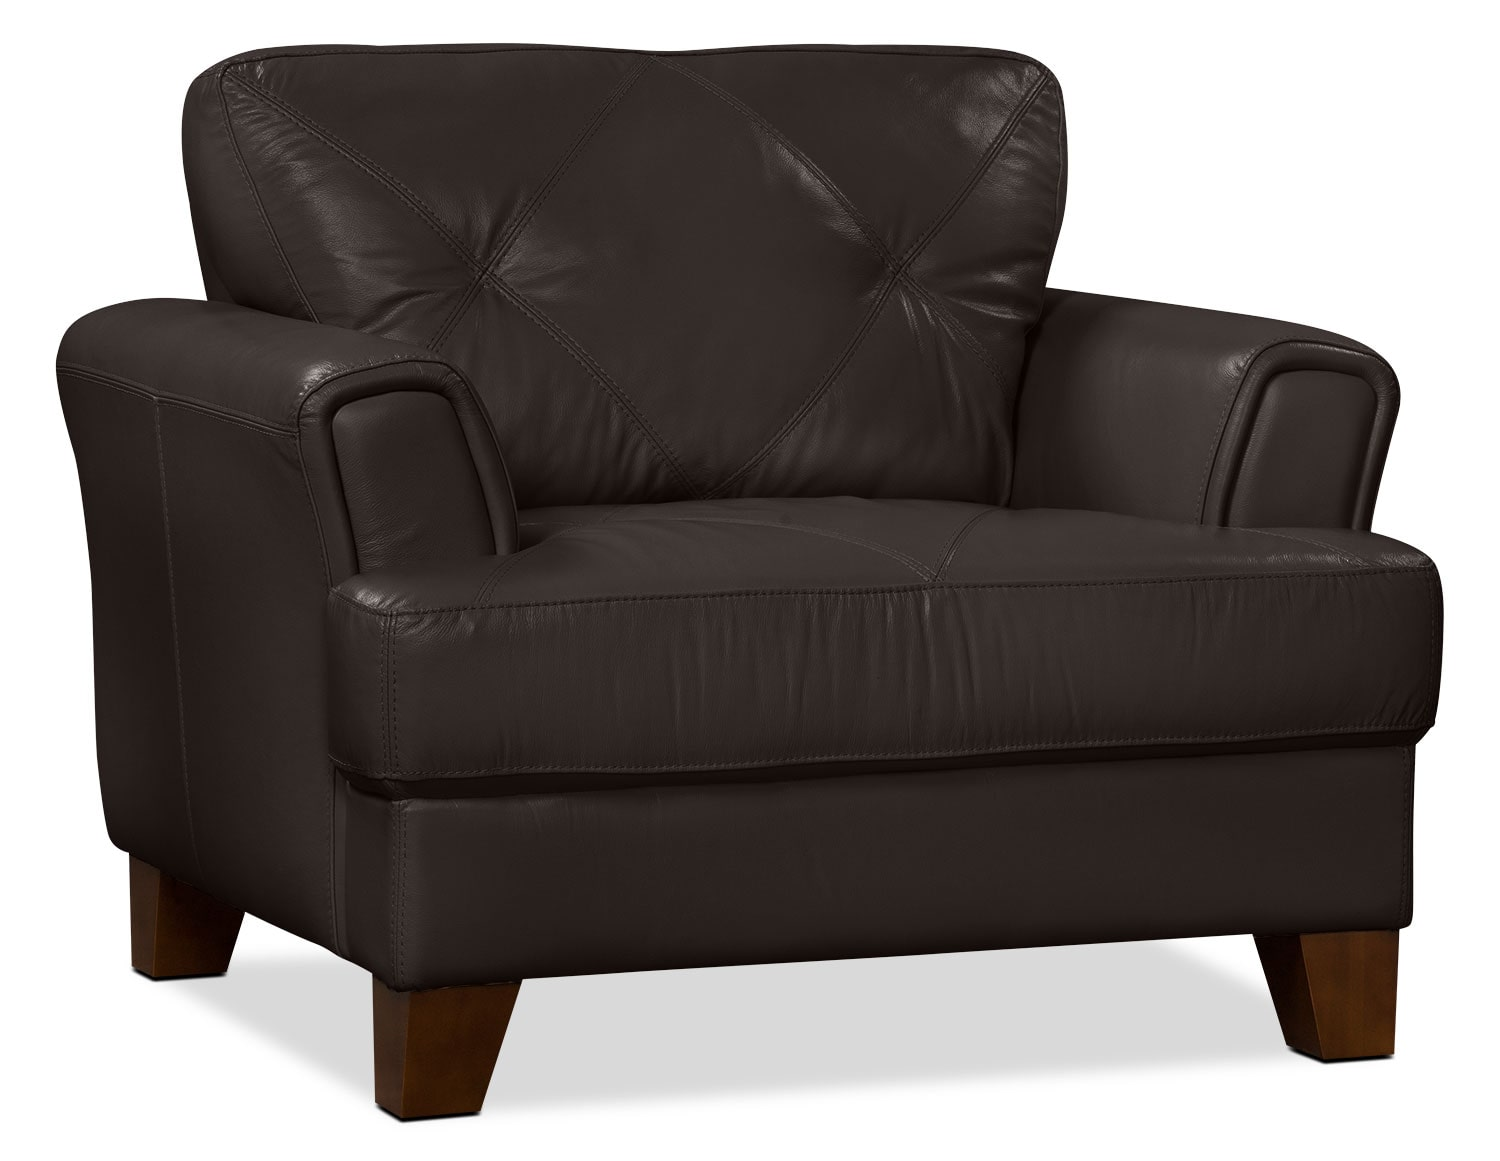 genuine leather chair bariatric transport 500 lbs vita 100  chocolate the brick